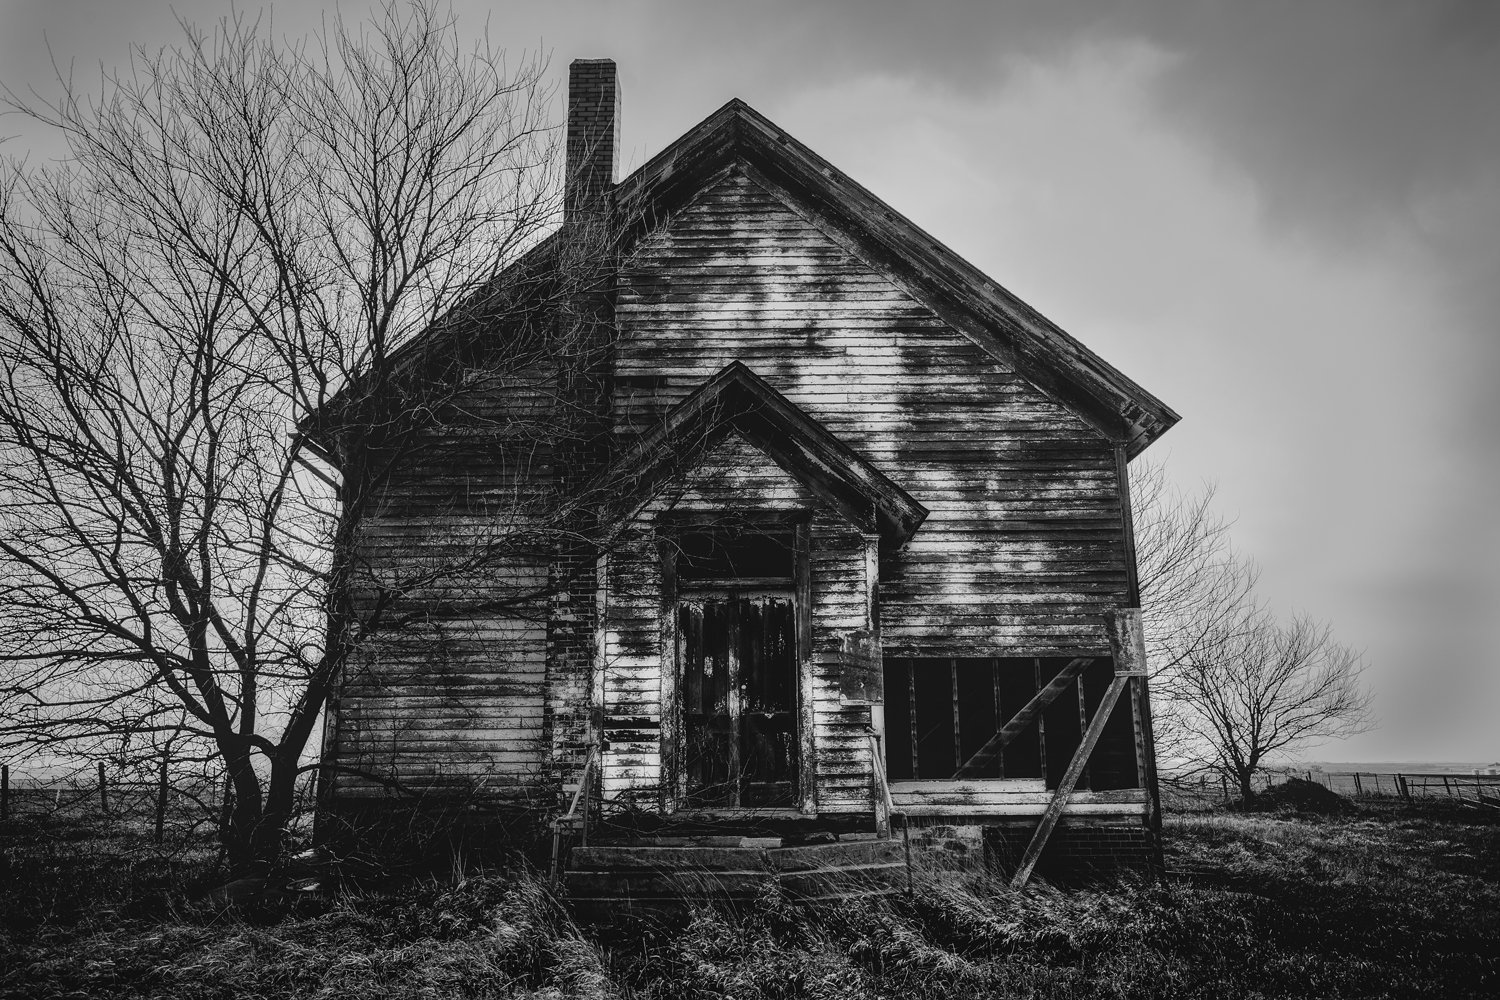 Black and White Art Photography Print - Fine Art Picture of Abandoned Schoolhouse in Western Iowa Rustic Wall Art Great Plains Photo Decor 5x7 to 30x45